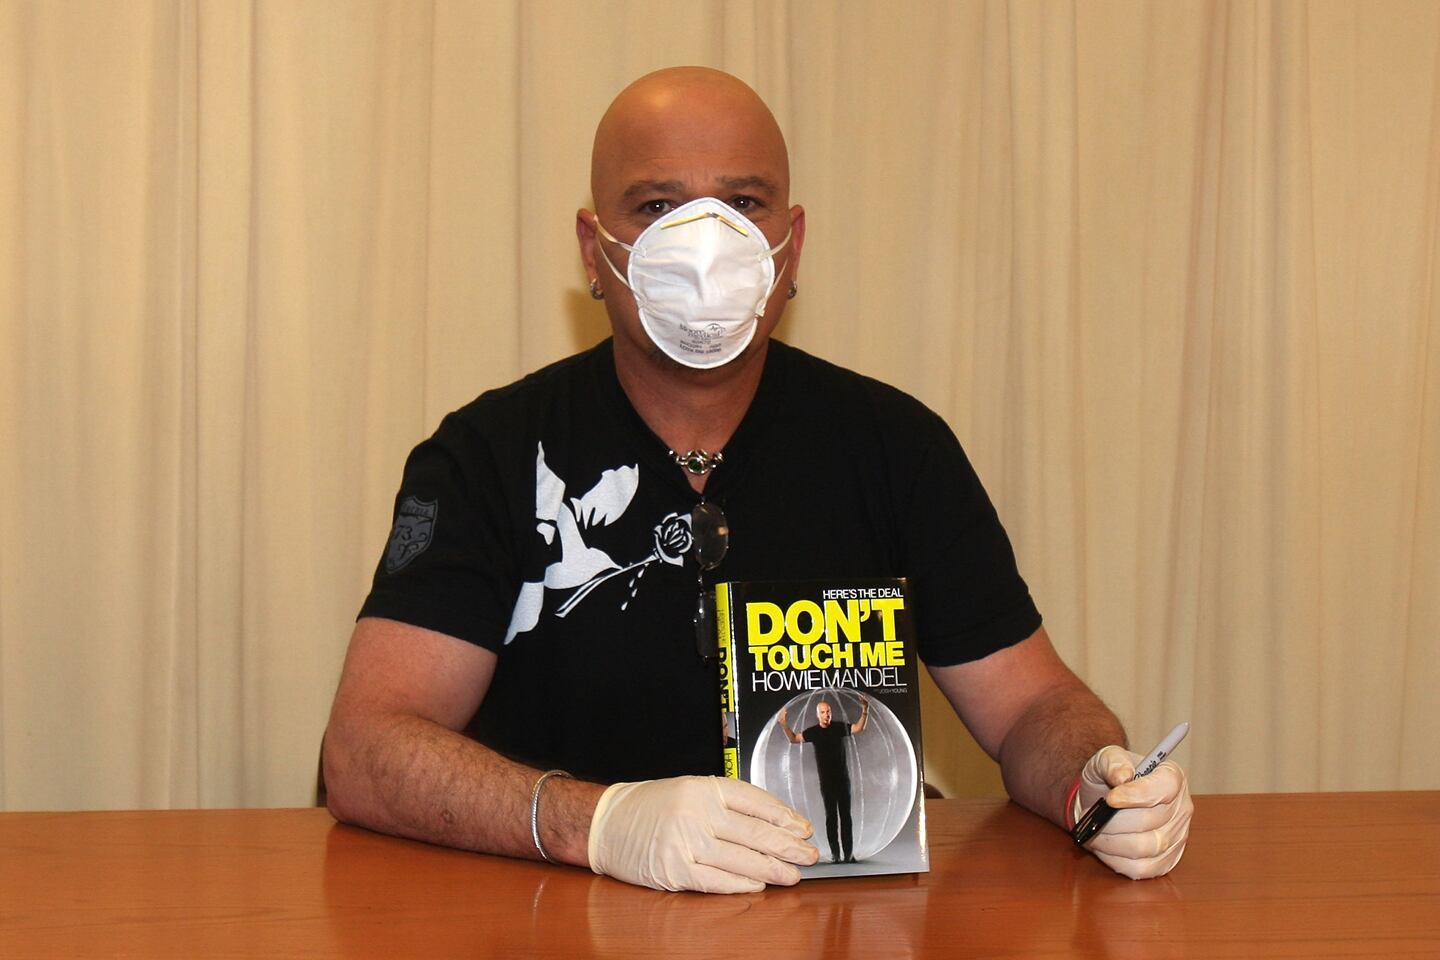 """Howie Mandel Signs """"Here's The Deal: Don't Touch Me"""""""